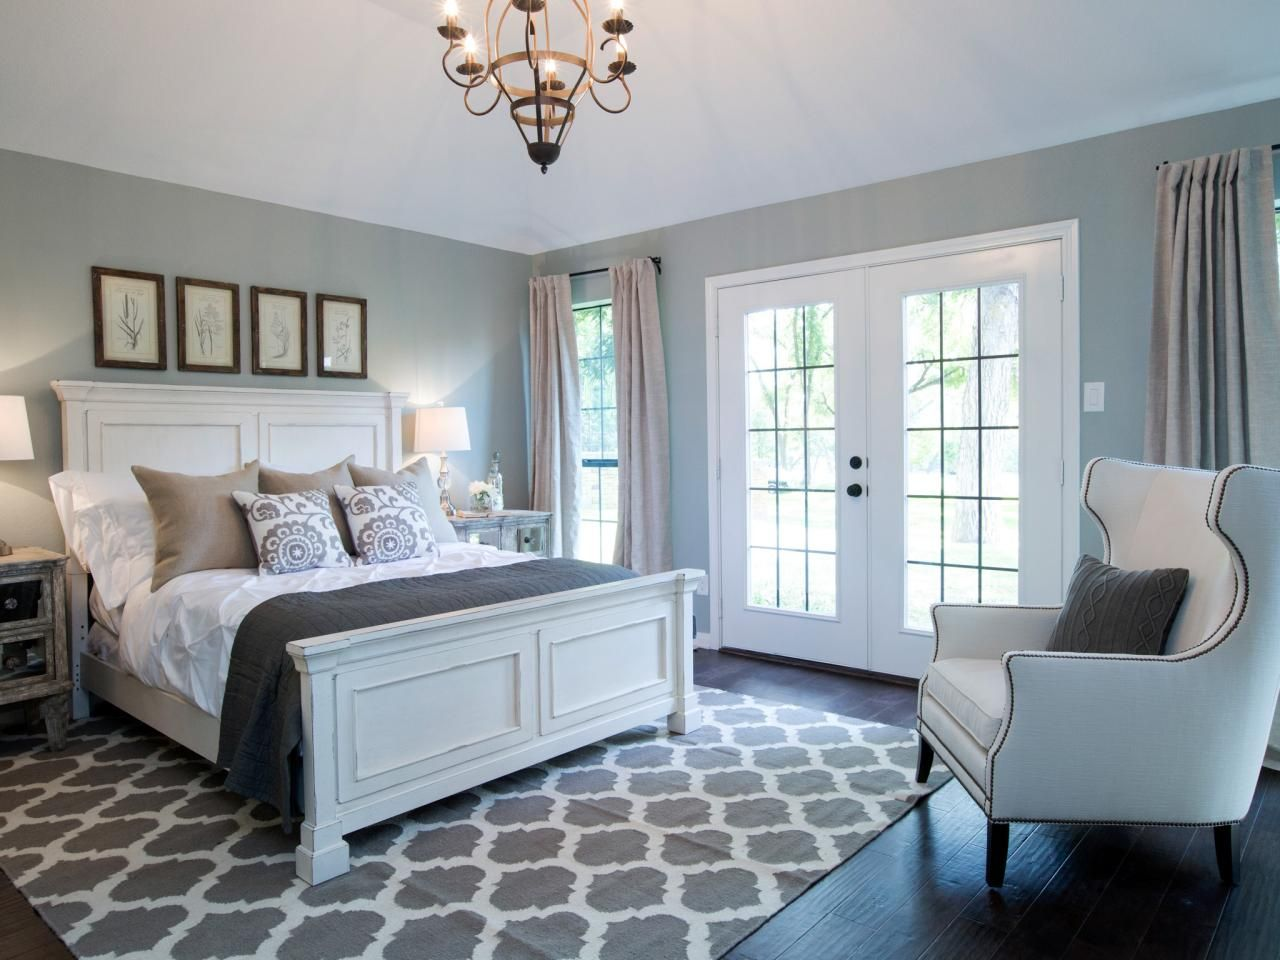 Master bedroom decor  Fixer Upper Yours Mine Ours and a Home on the River  decorating